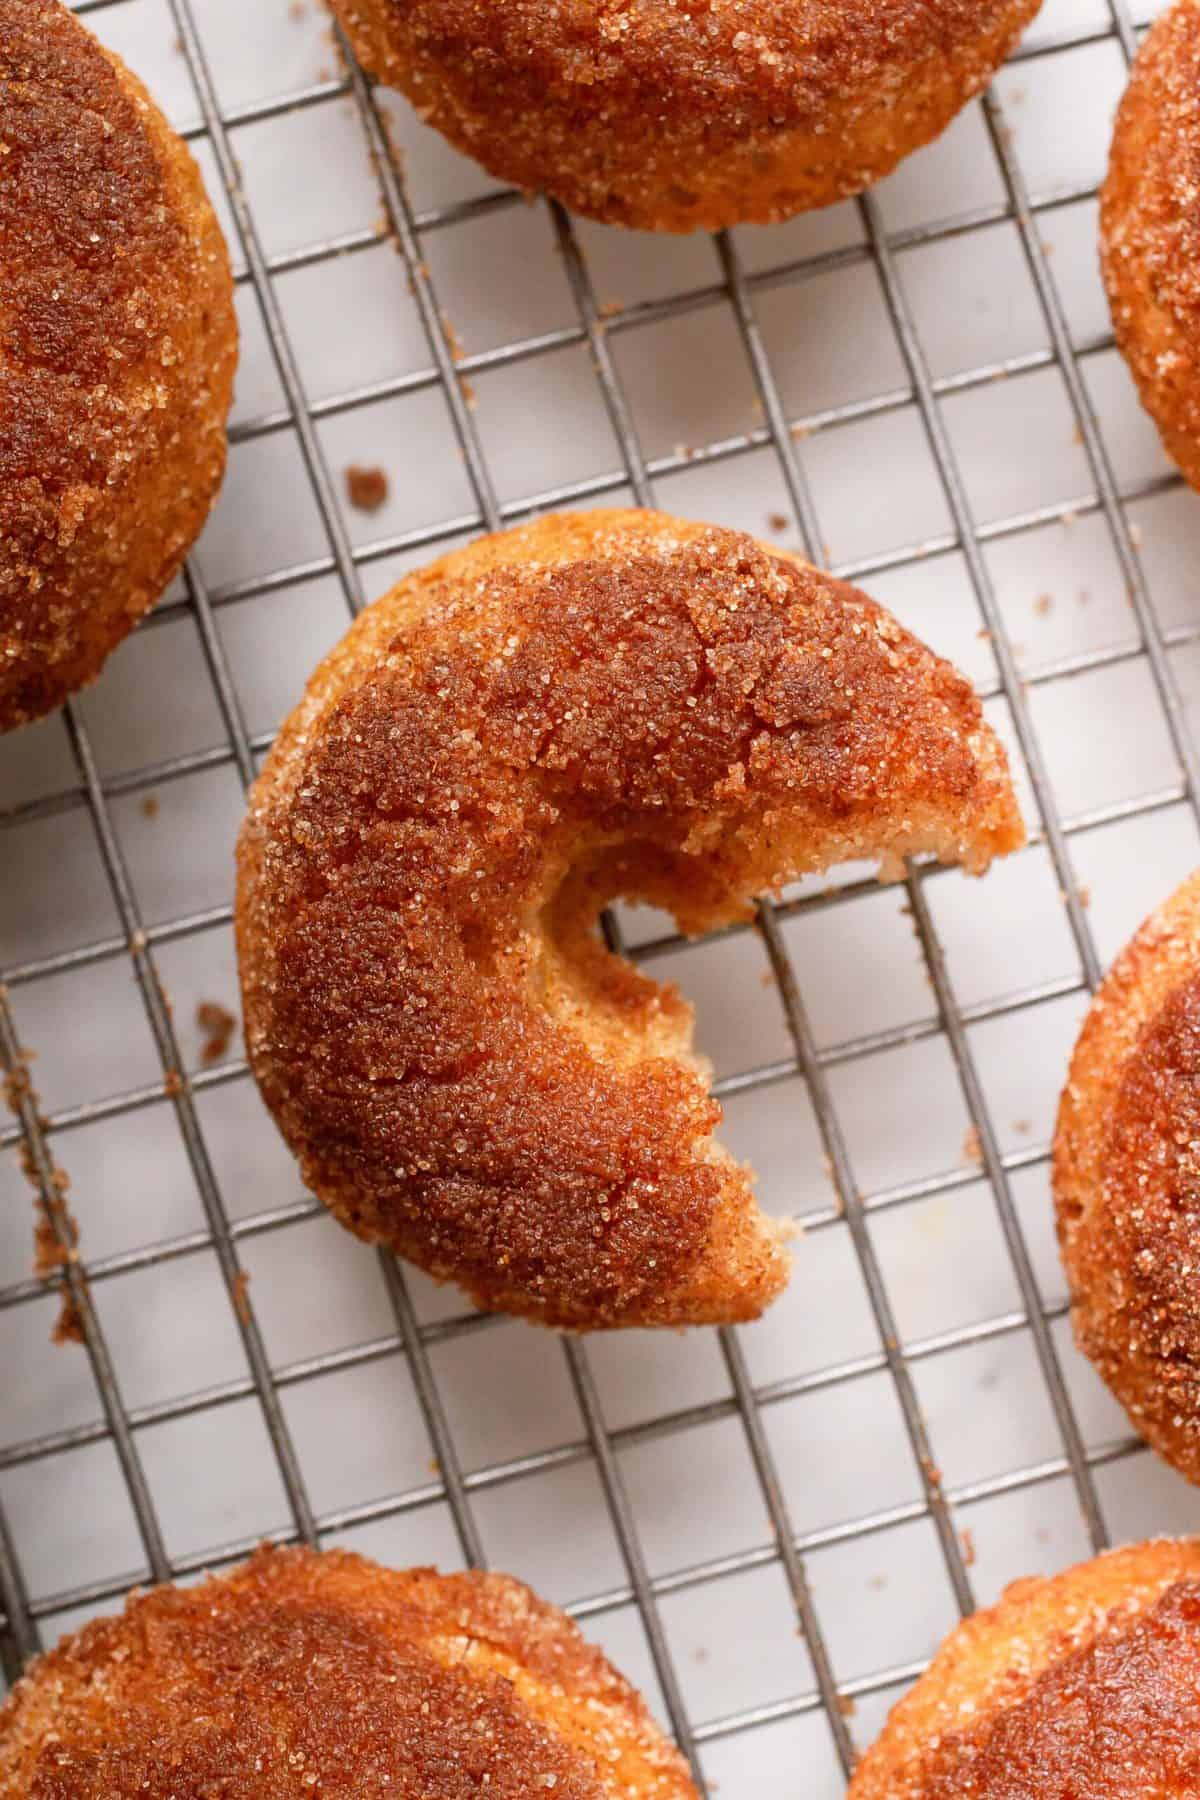 baked apple cider donuts sitting on a metal cooking rack. one donut has a bite taken out of it